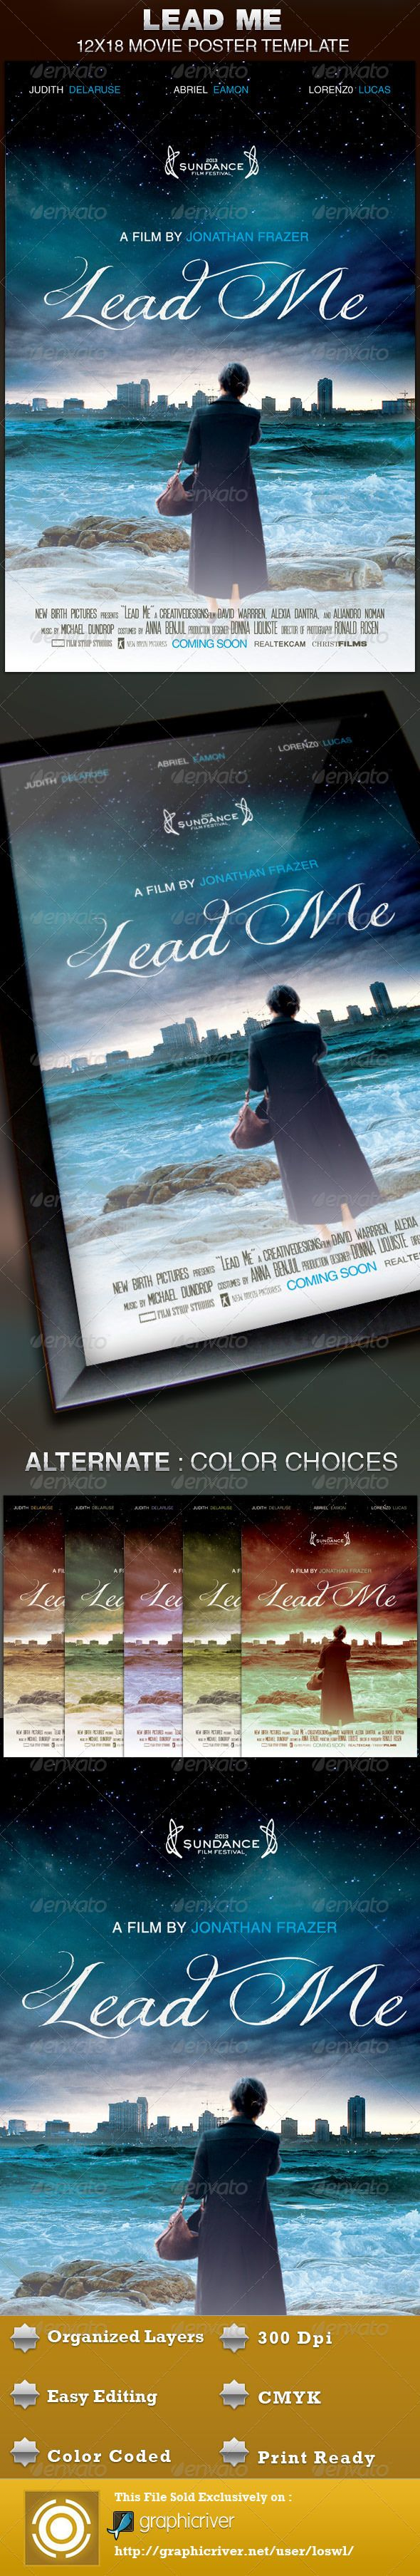 This Lead Me Movie Poster Template is sold exclusively on graphicriver, it can be used for your movie promotion, event marketing, church movie night, sermon marketing etc. In this package you'll find 1 Photoshop file. All text and graphics in the file are editable, color coded and simple to edit. The file also has 6 one-click color options. $6.00